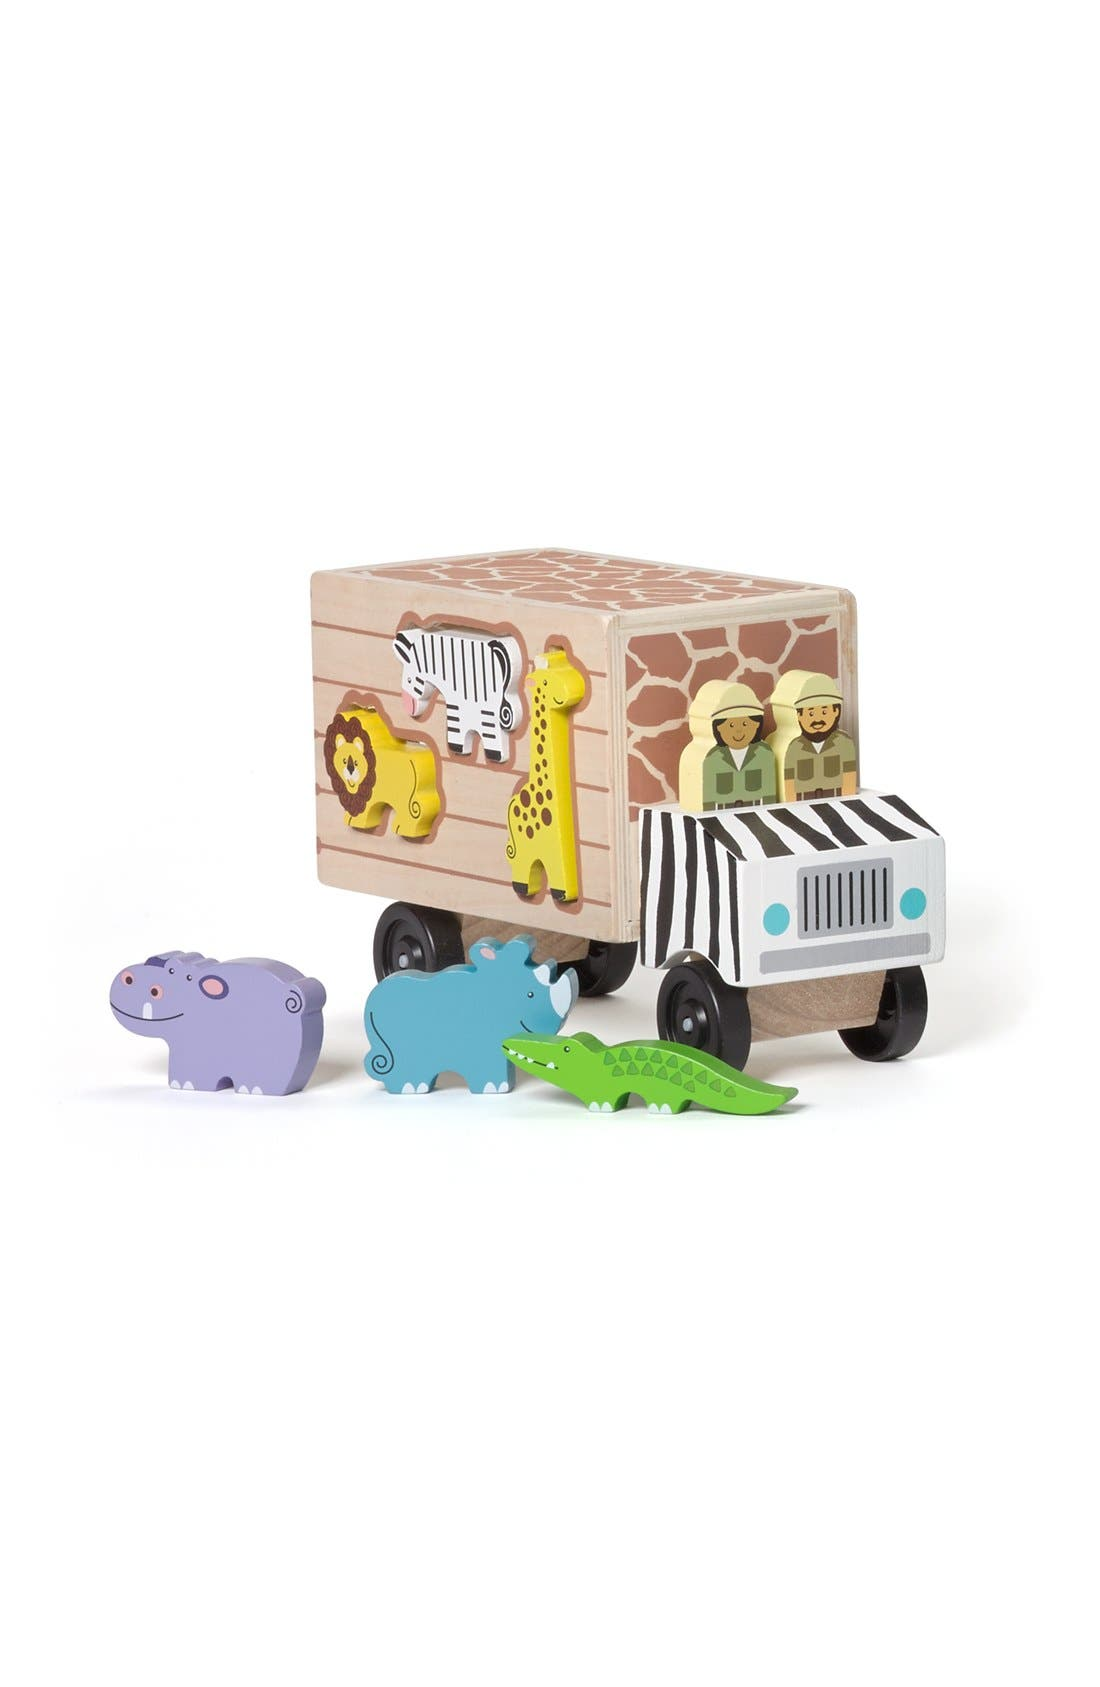 'Animal Rescue' Shape Sorting Wooden Truck Toy,                             Alternate thumbnail 3, color,                             BROWN